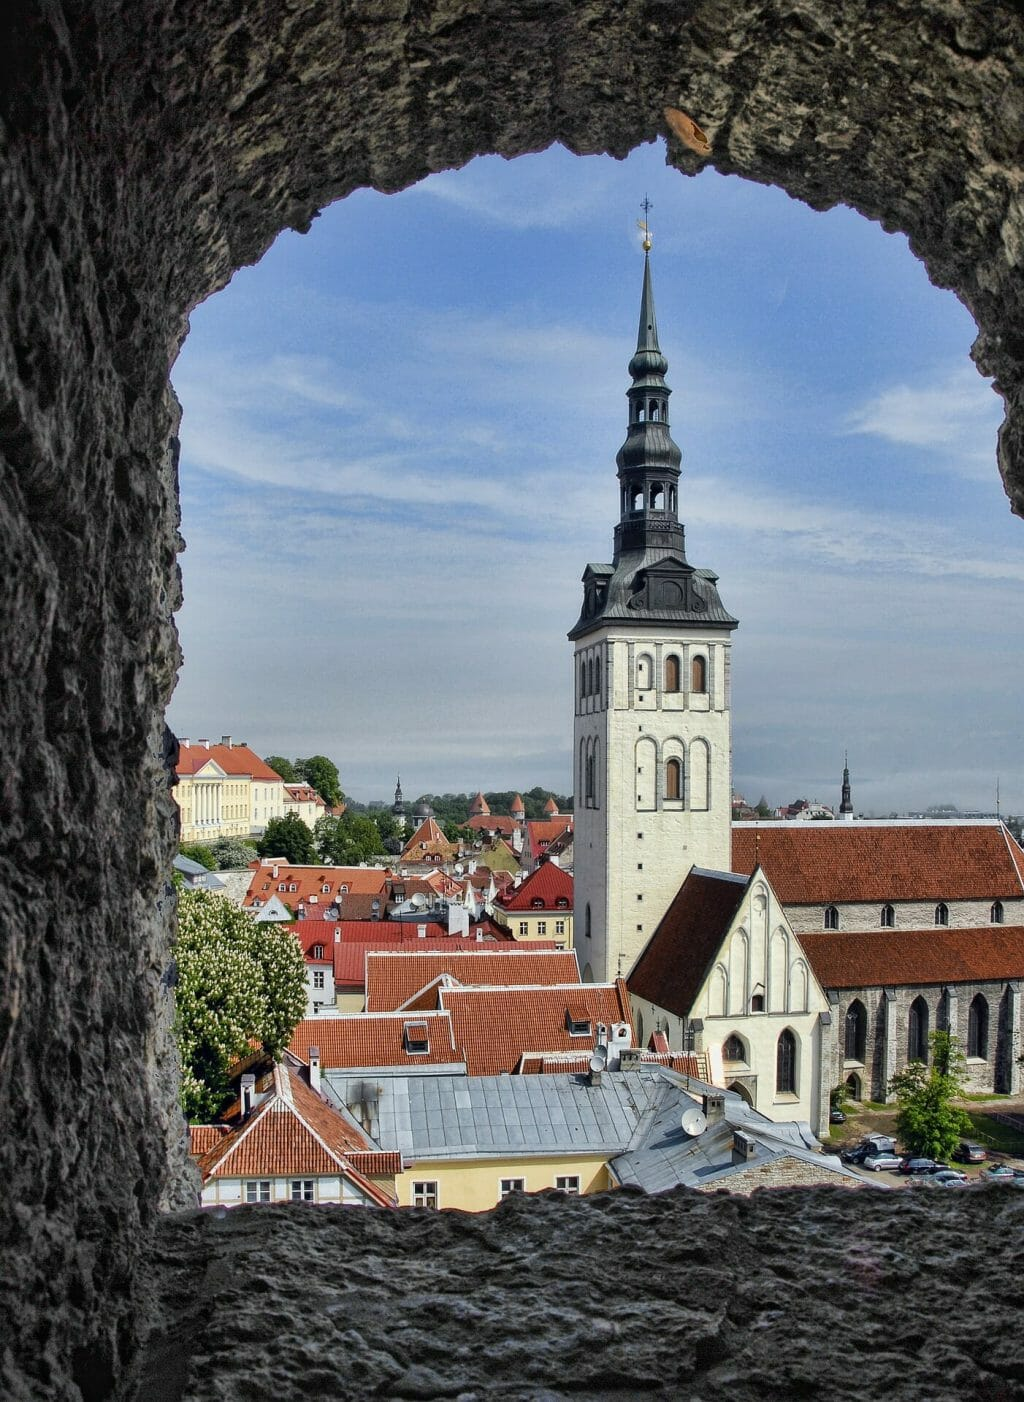 View of the church from a stone window in Estonia